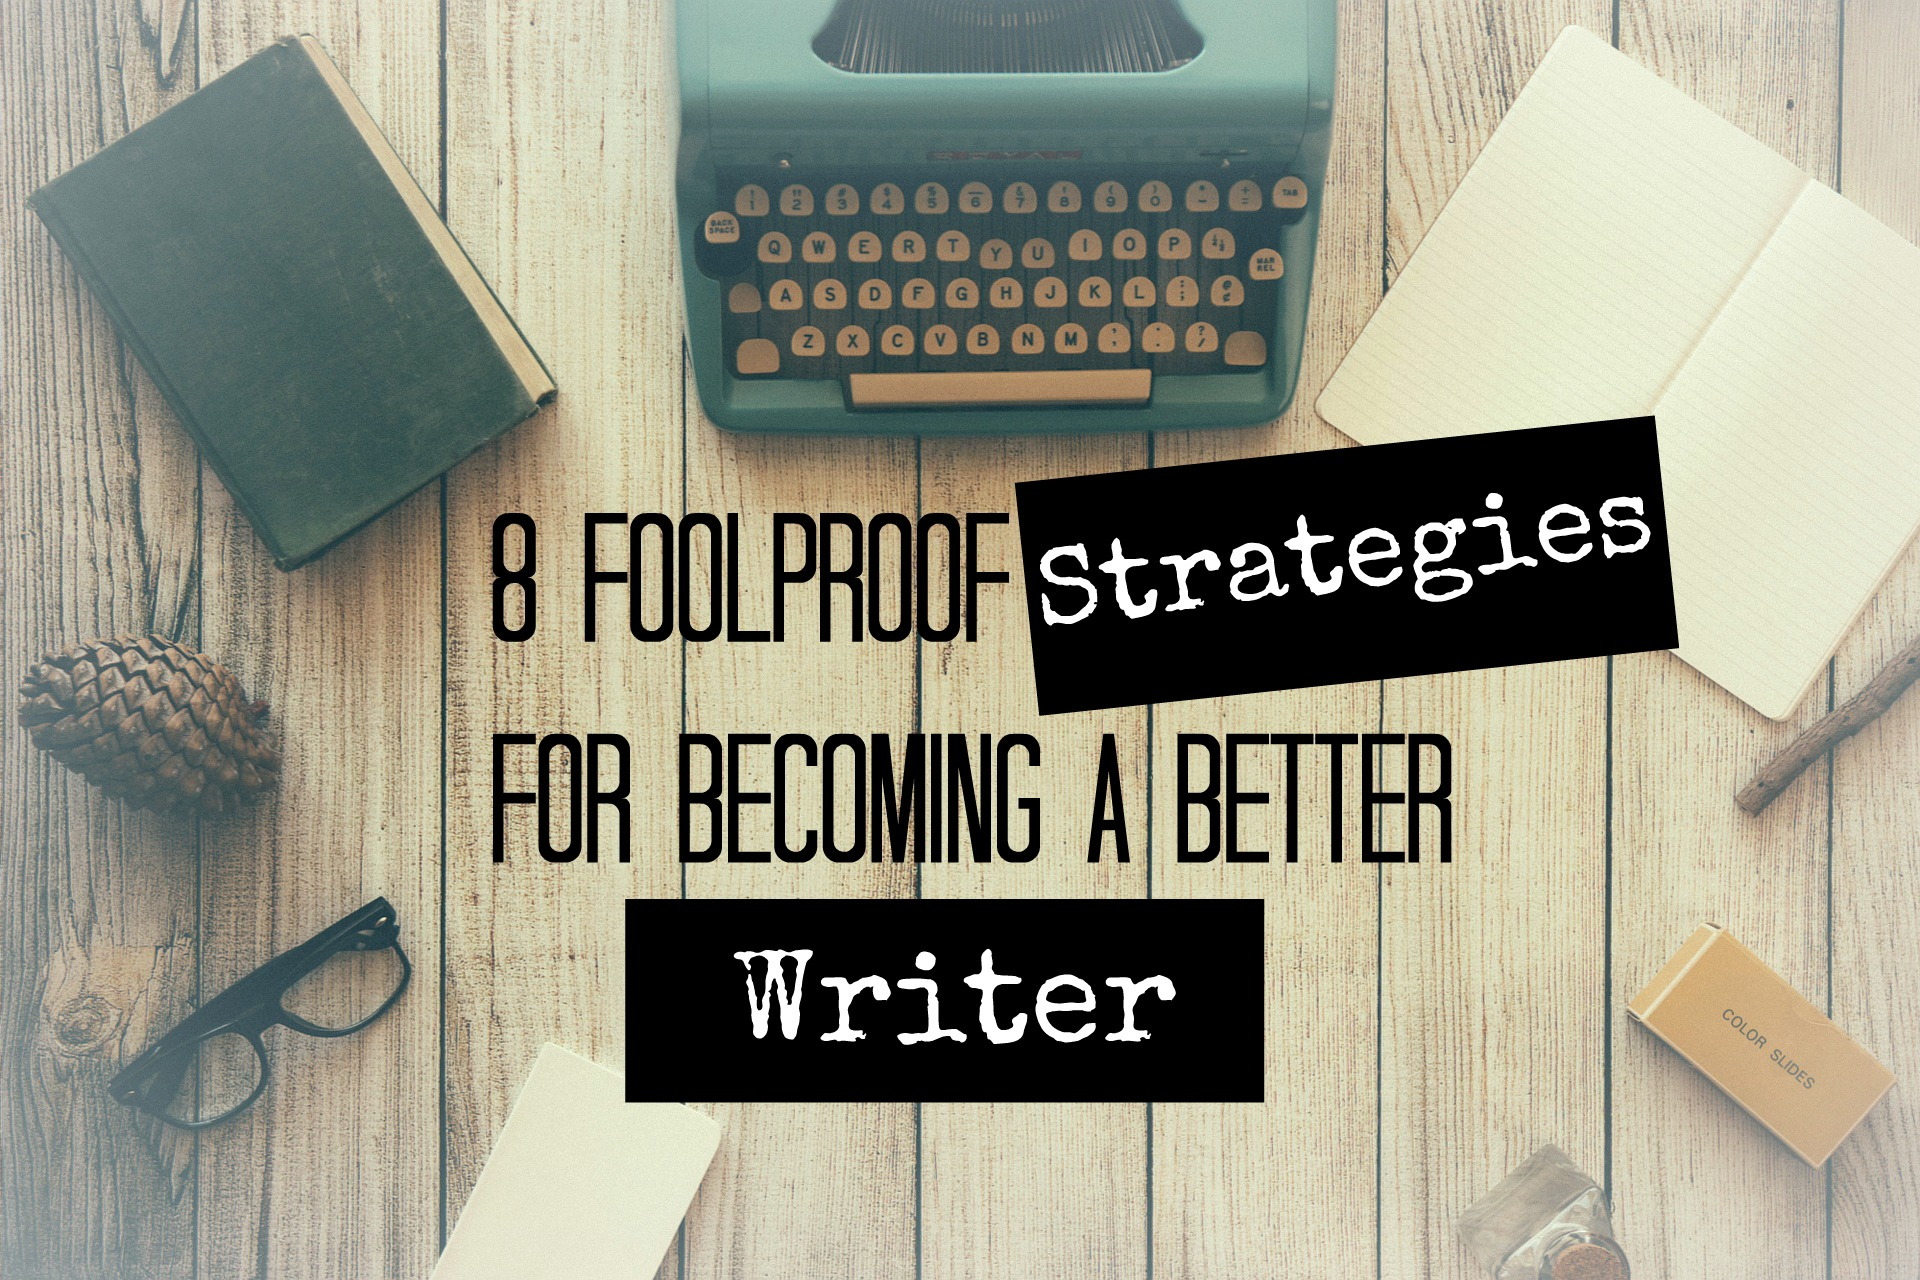 How can I become a good writer?